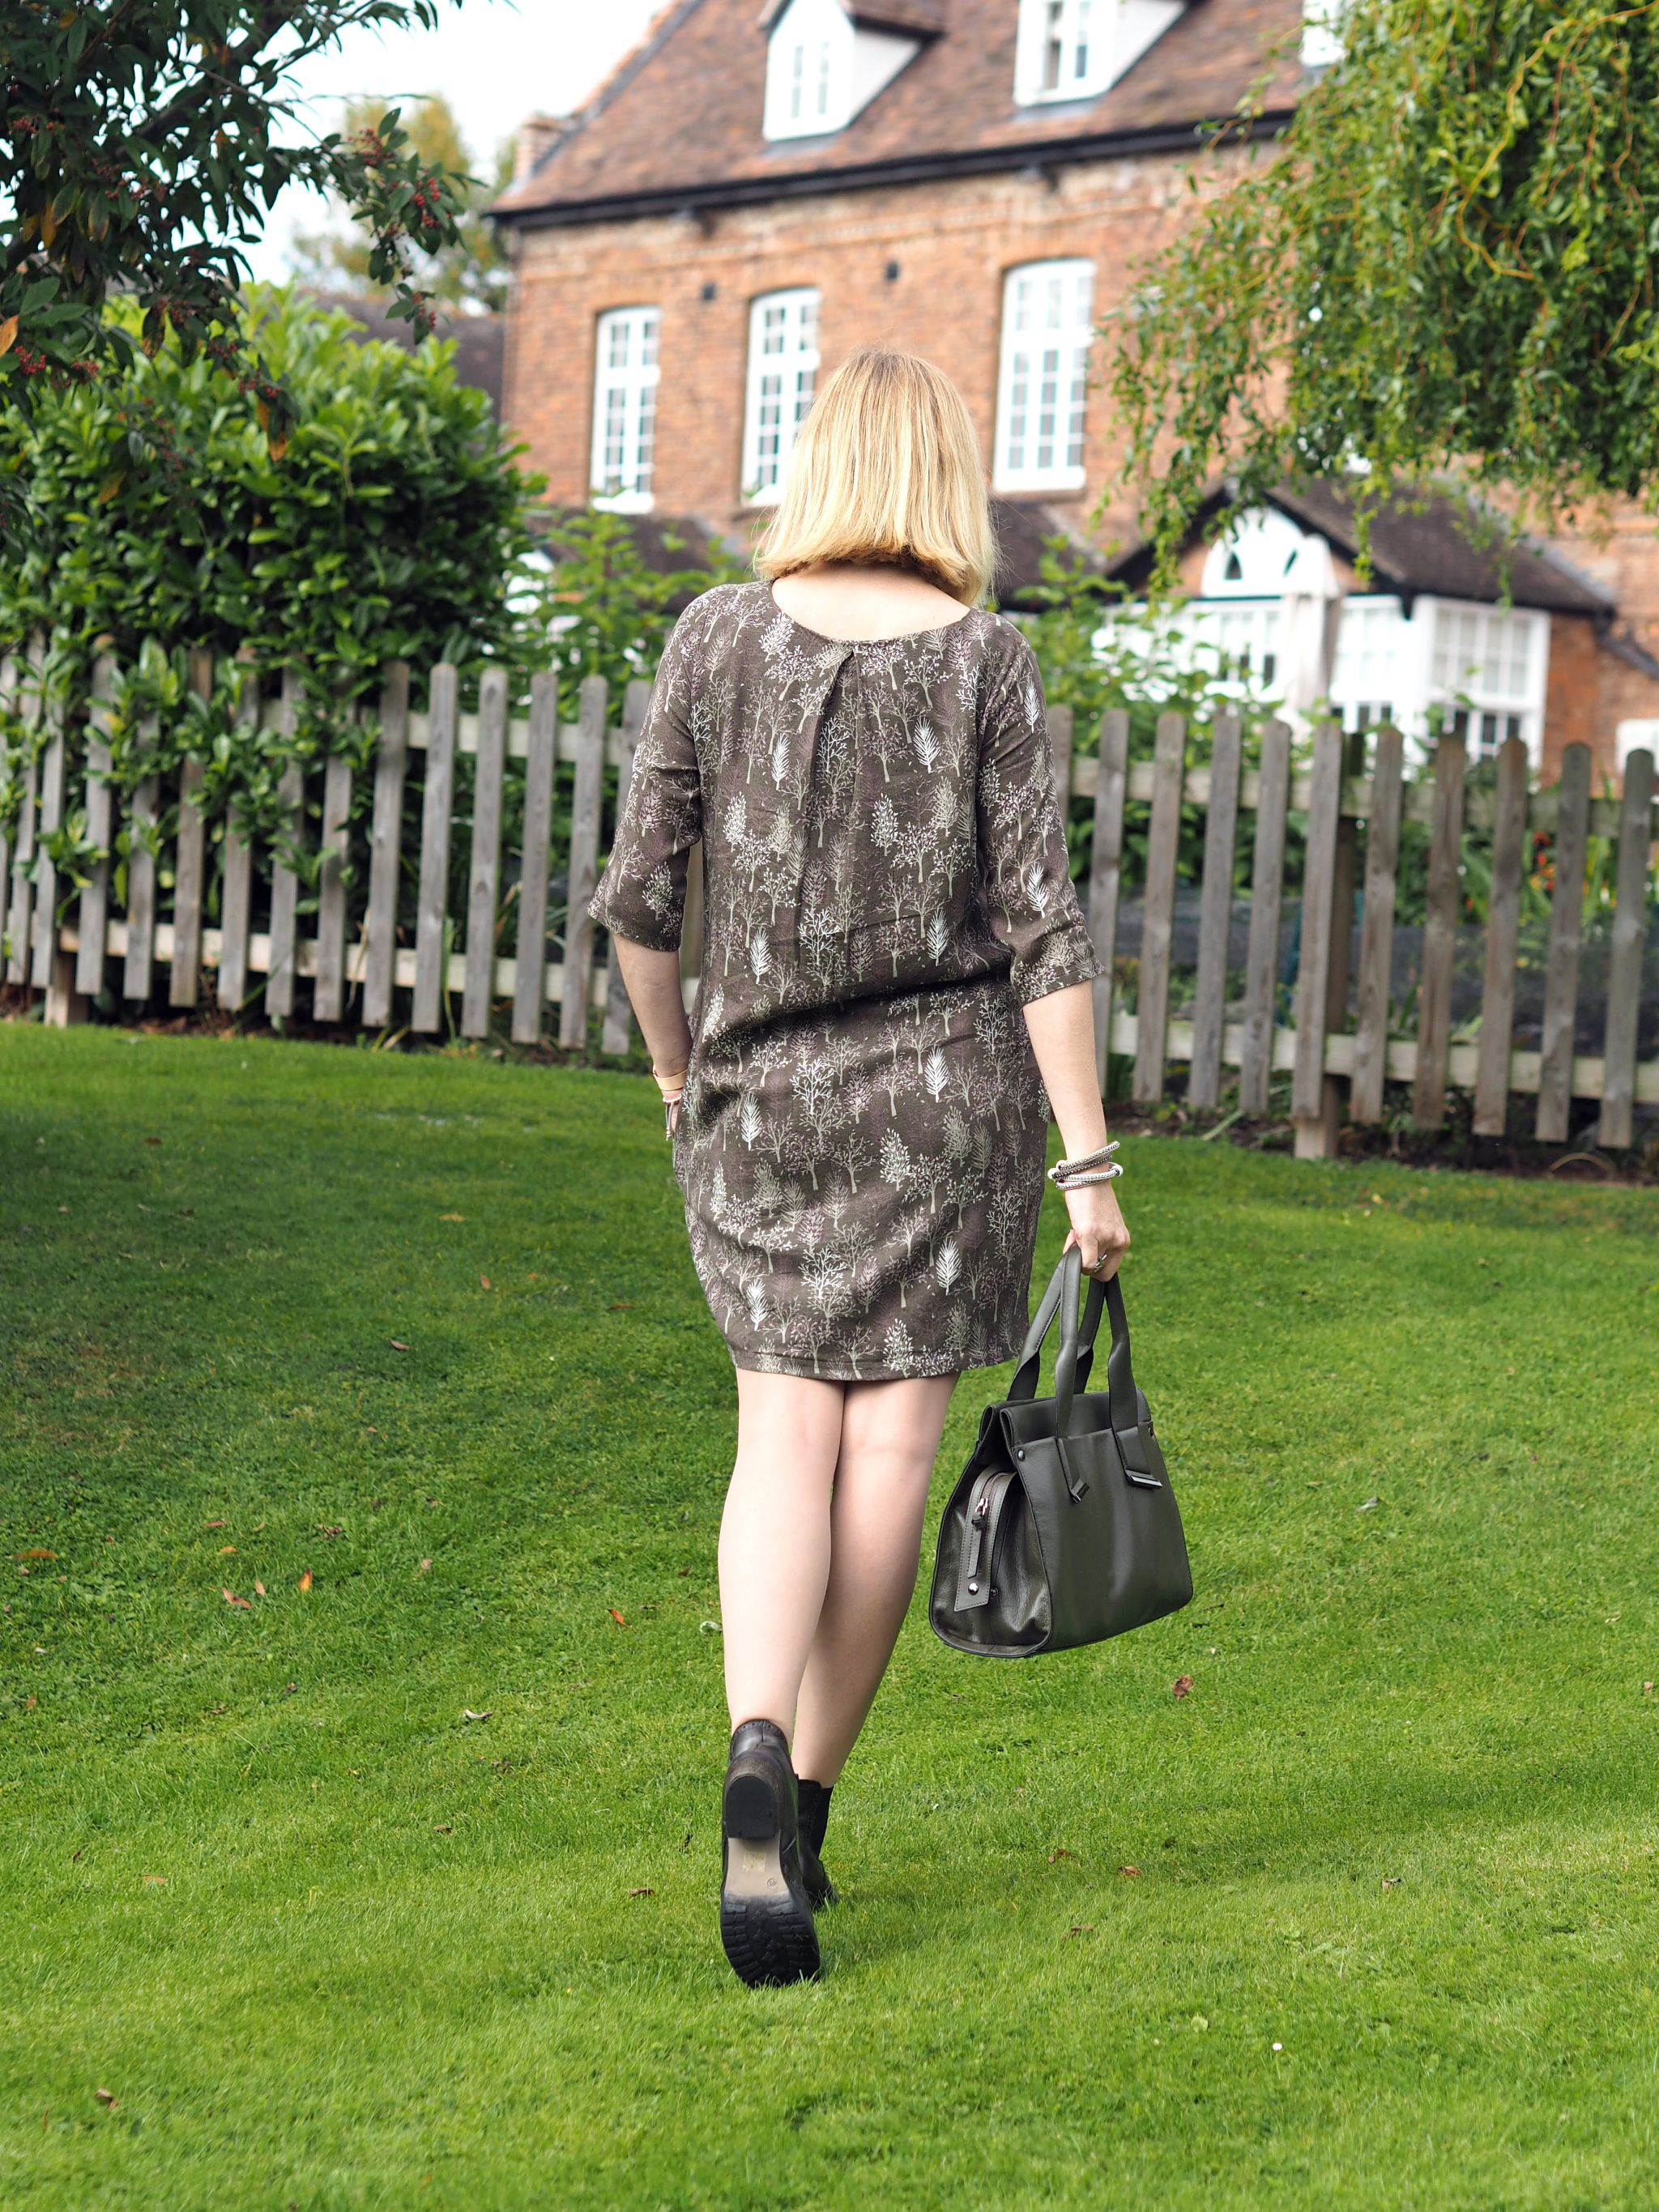 what-lizzy-loves-khaki-print-dress-chelsea-boots-handbag